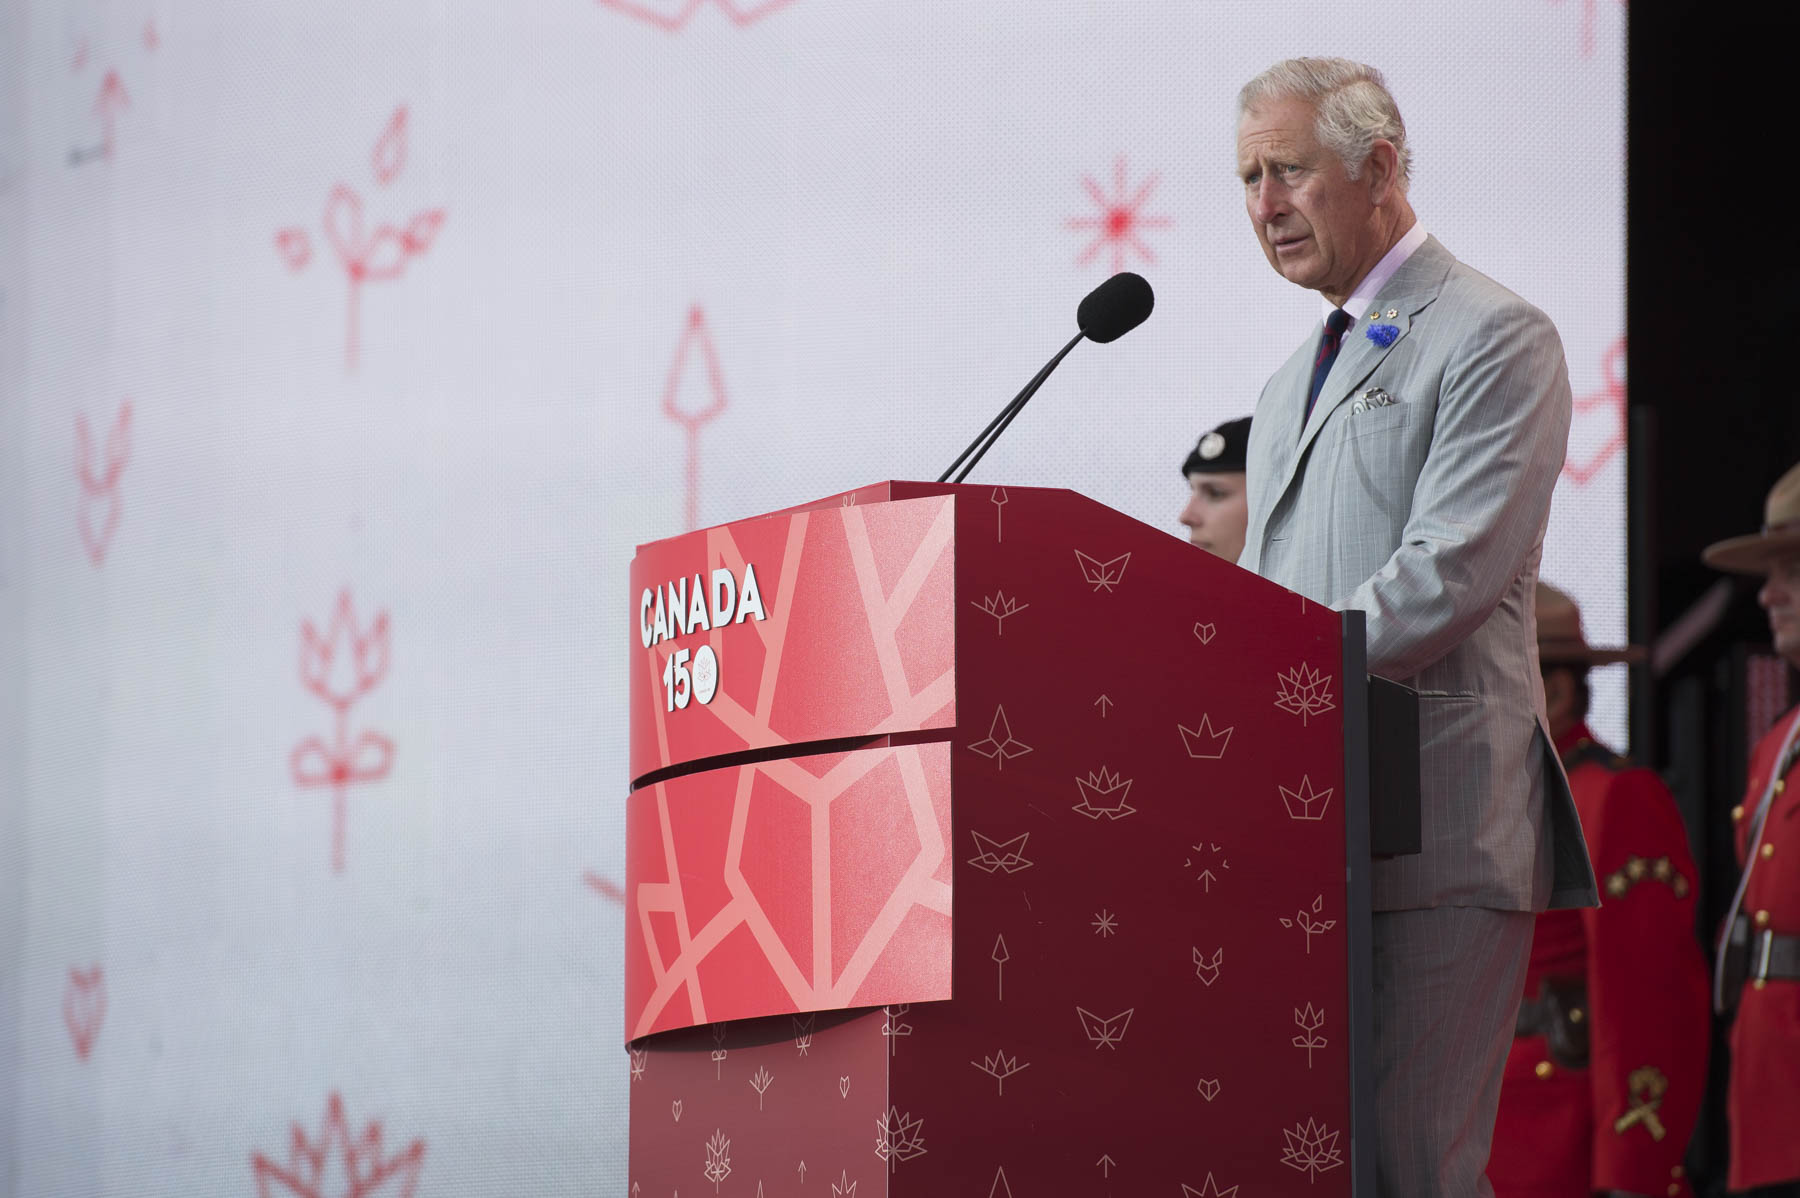 The Prince of Wales addressed Canadians on the day of our nation's sesquicentennial.